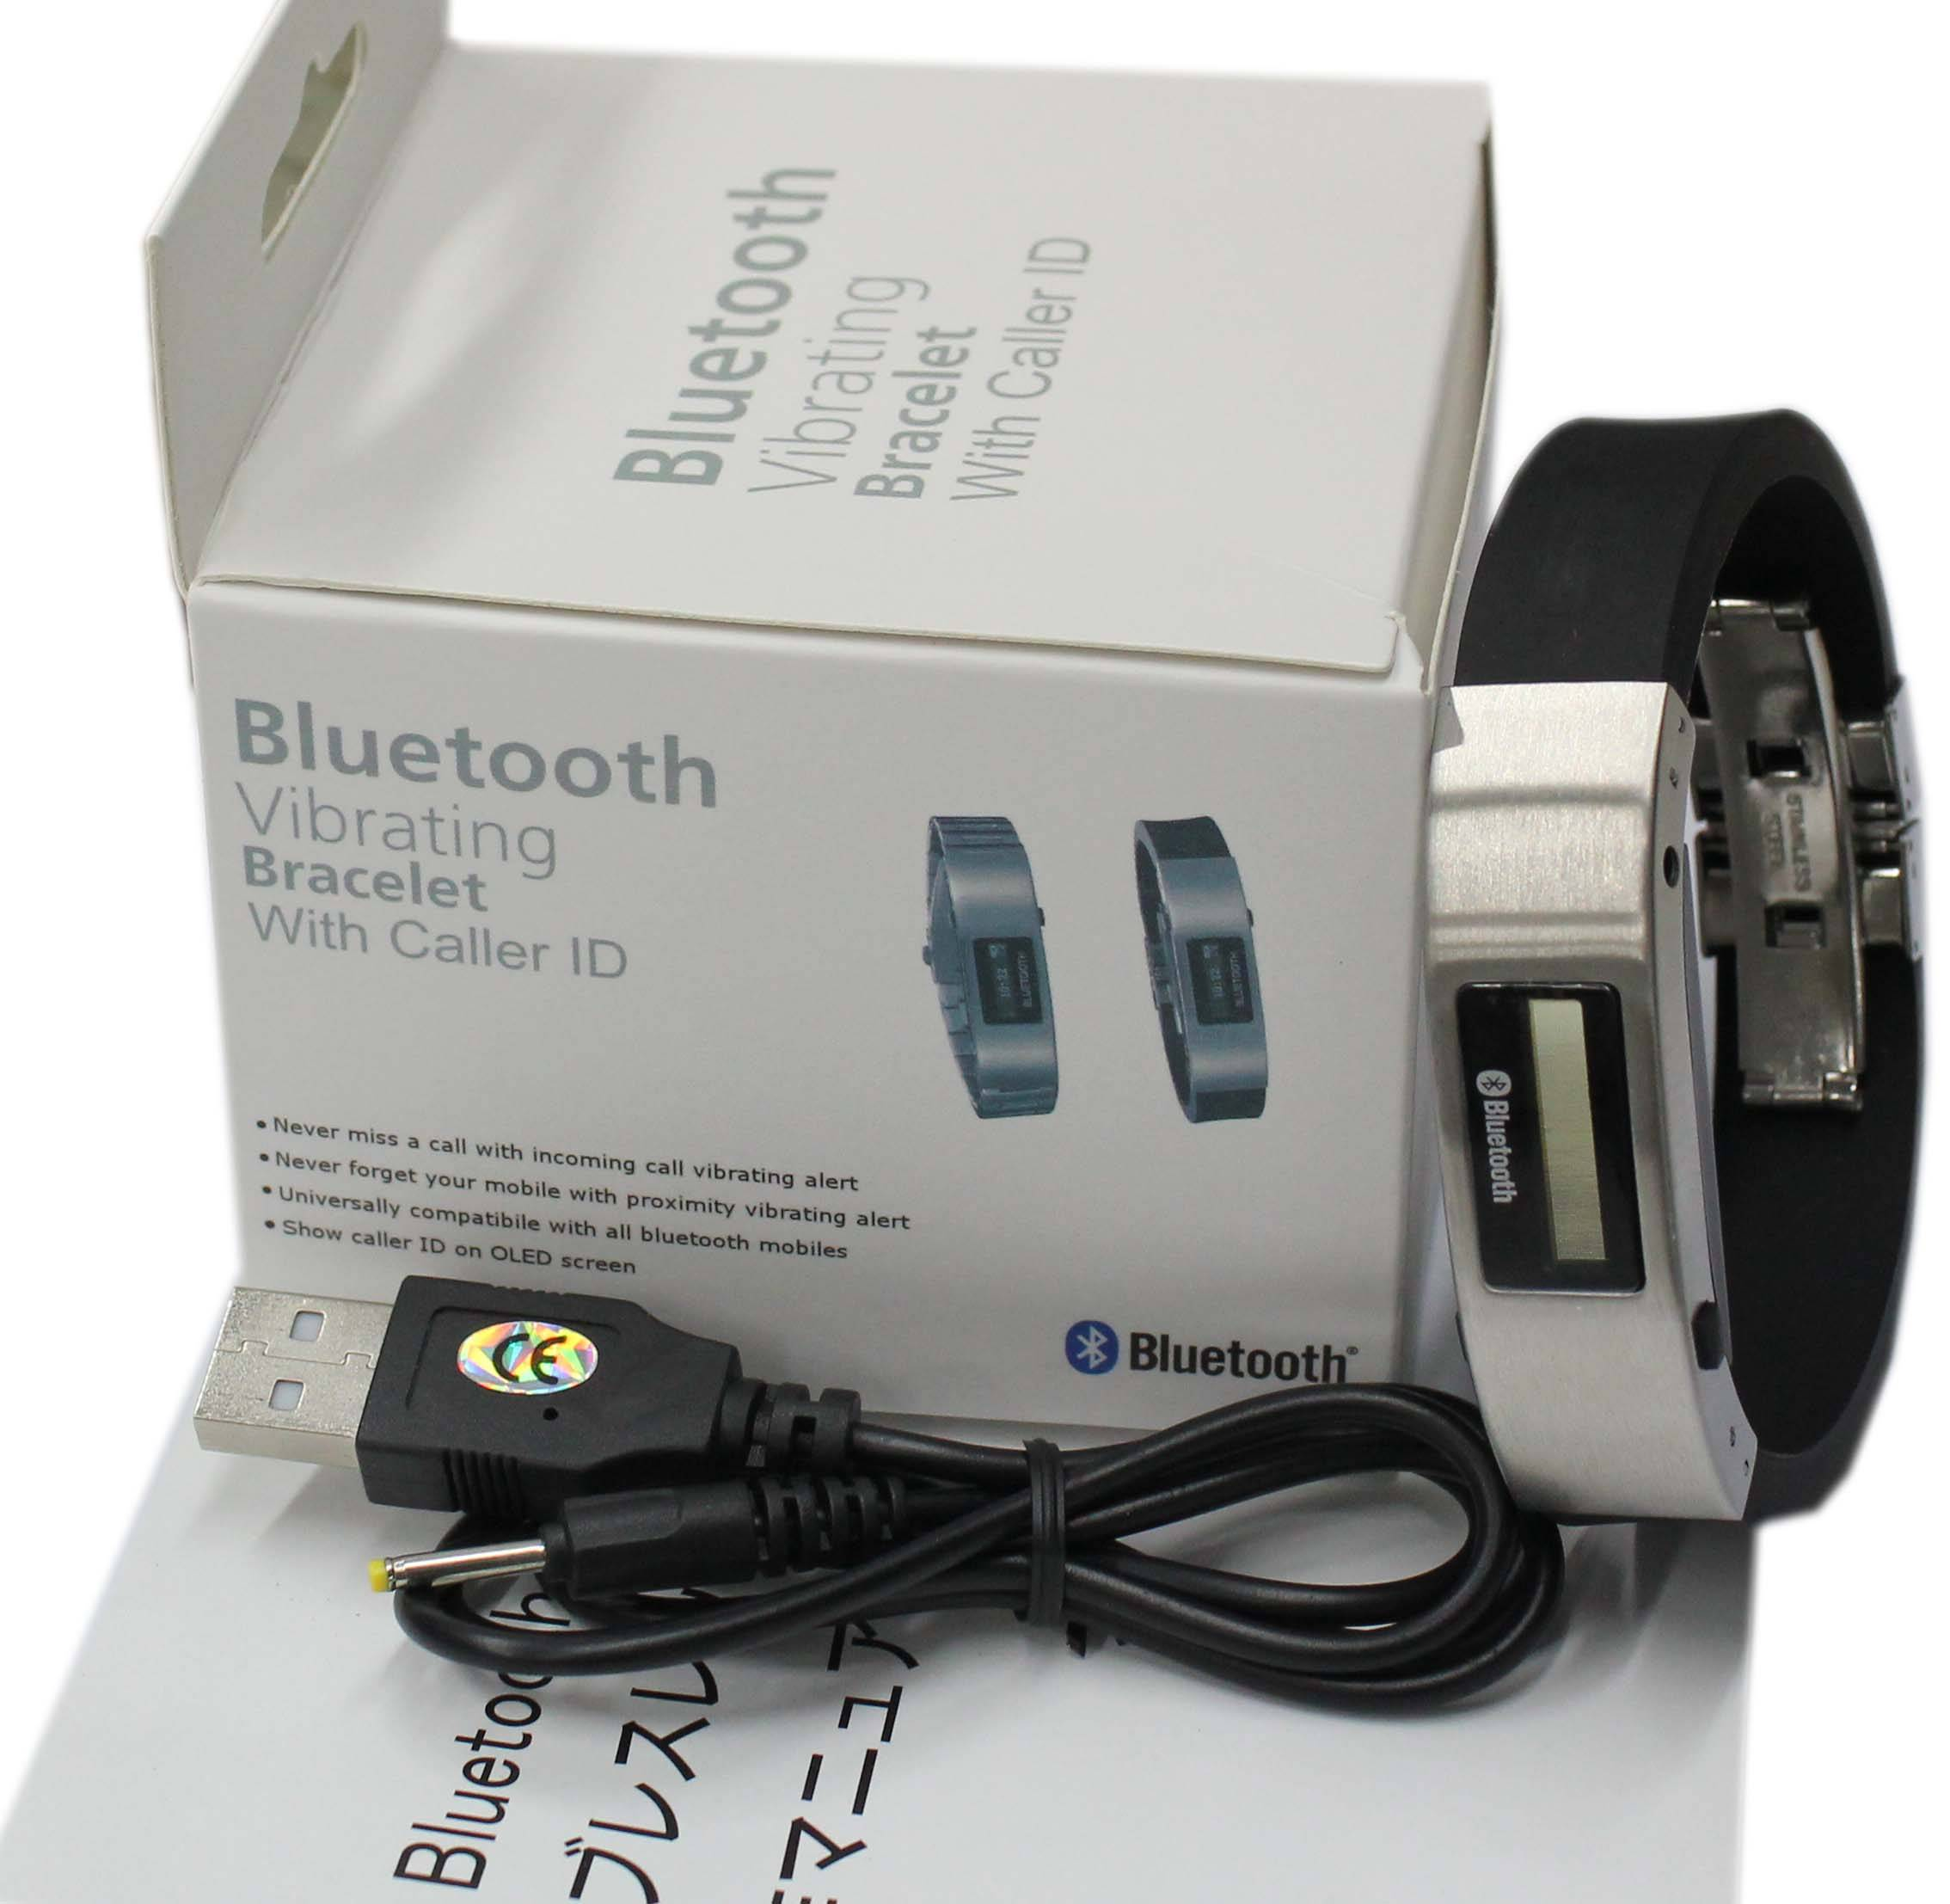 Bluetooth Bracelet,Humanized design of butterfly clasp, nice handle.